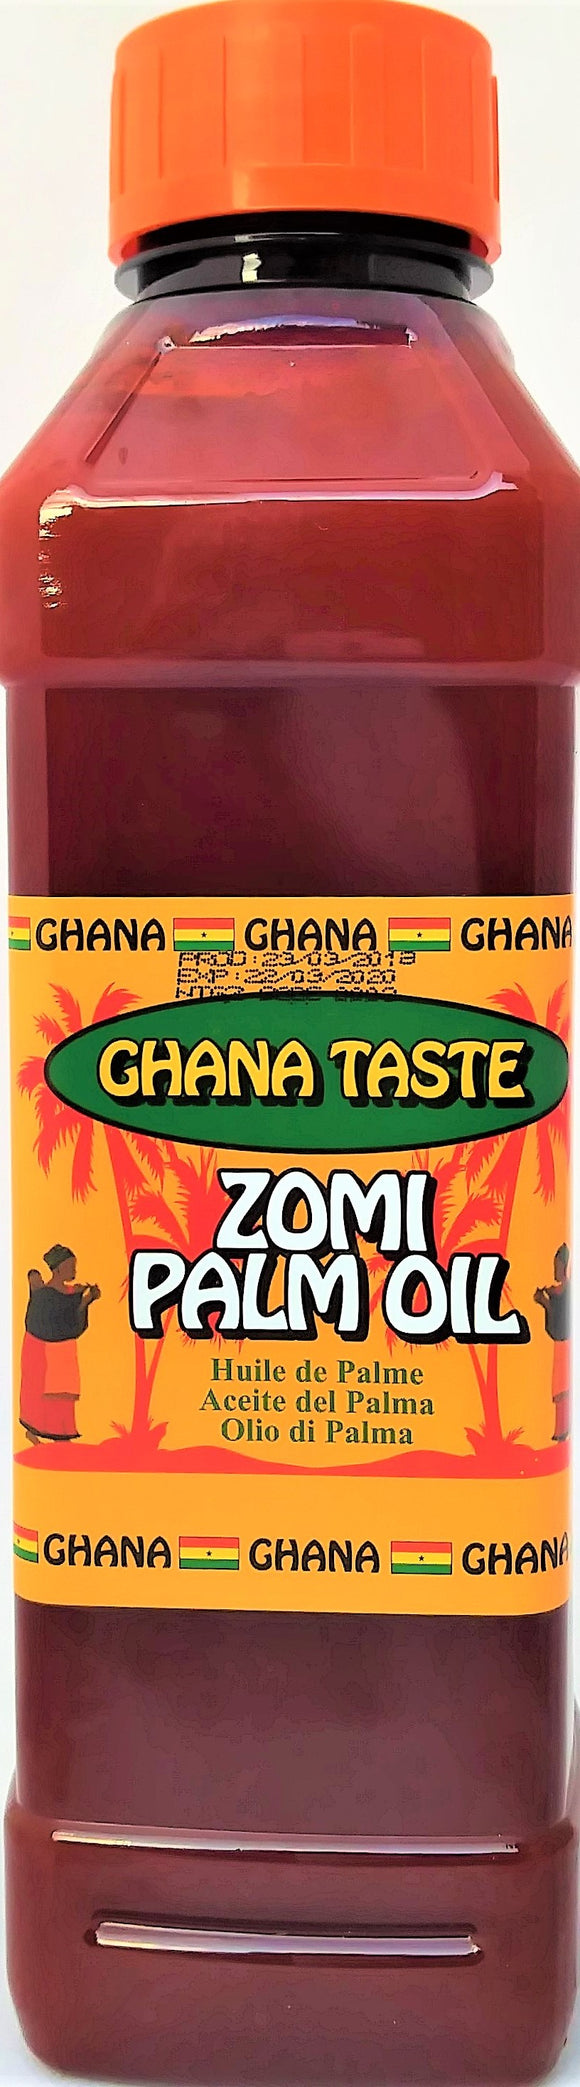 Zomi Palm Oil 1L - Carry Go Market